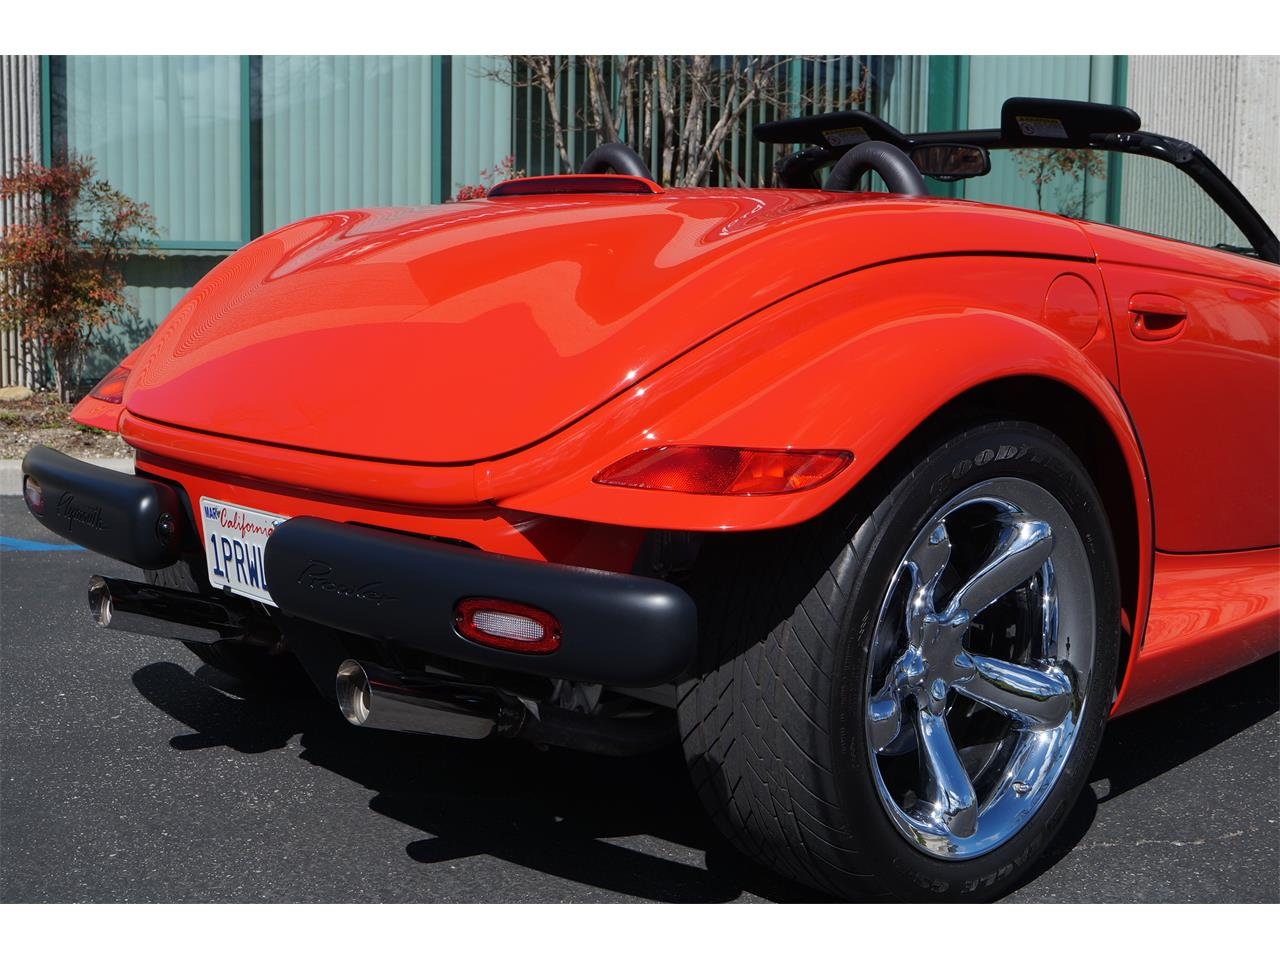 2000 Plymouth Prowler for sale in Thousand Oaks, CA – photo 27